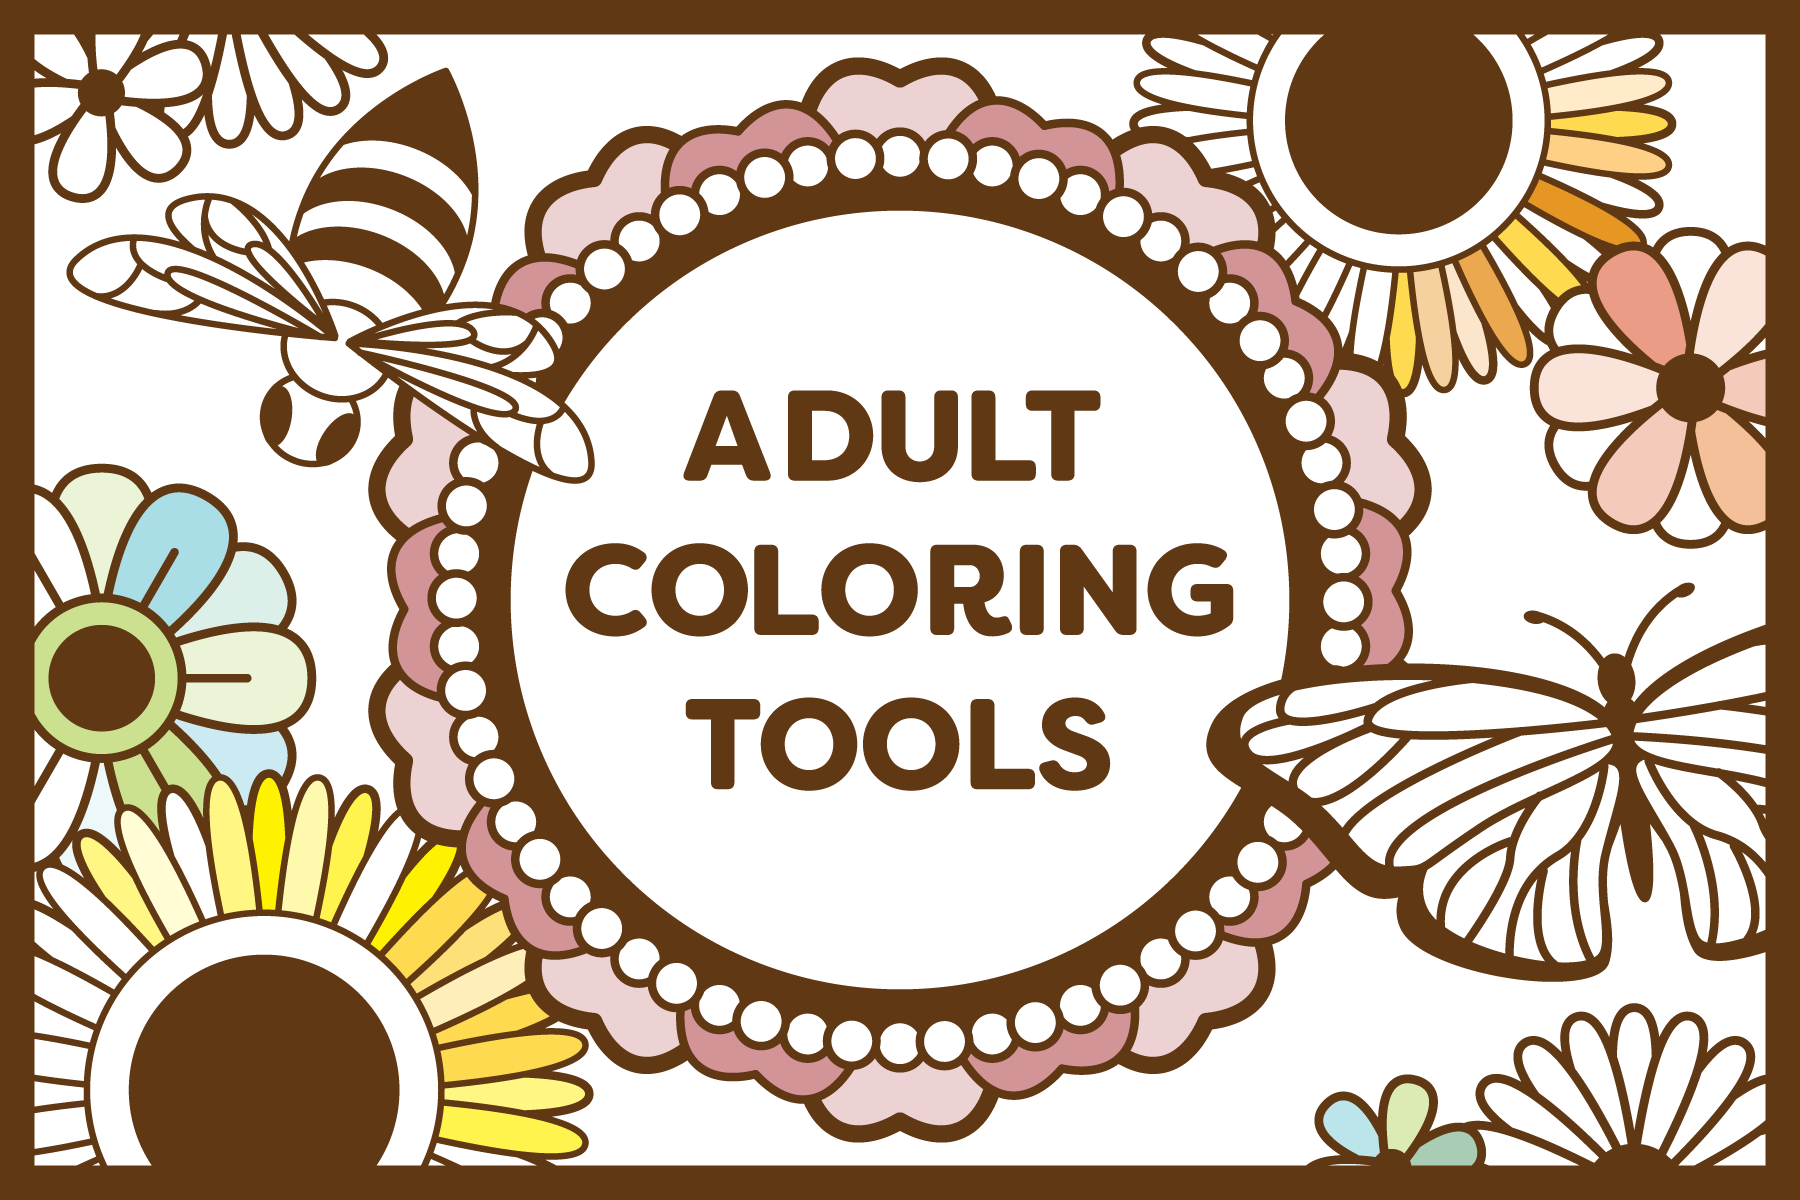 Adult Coloring Tools